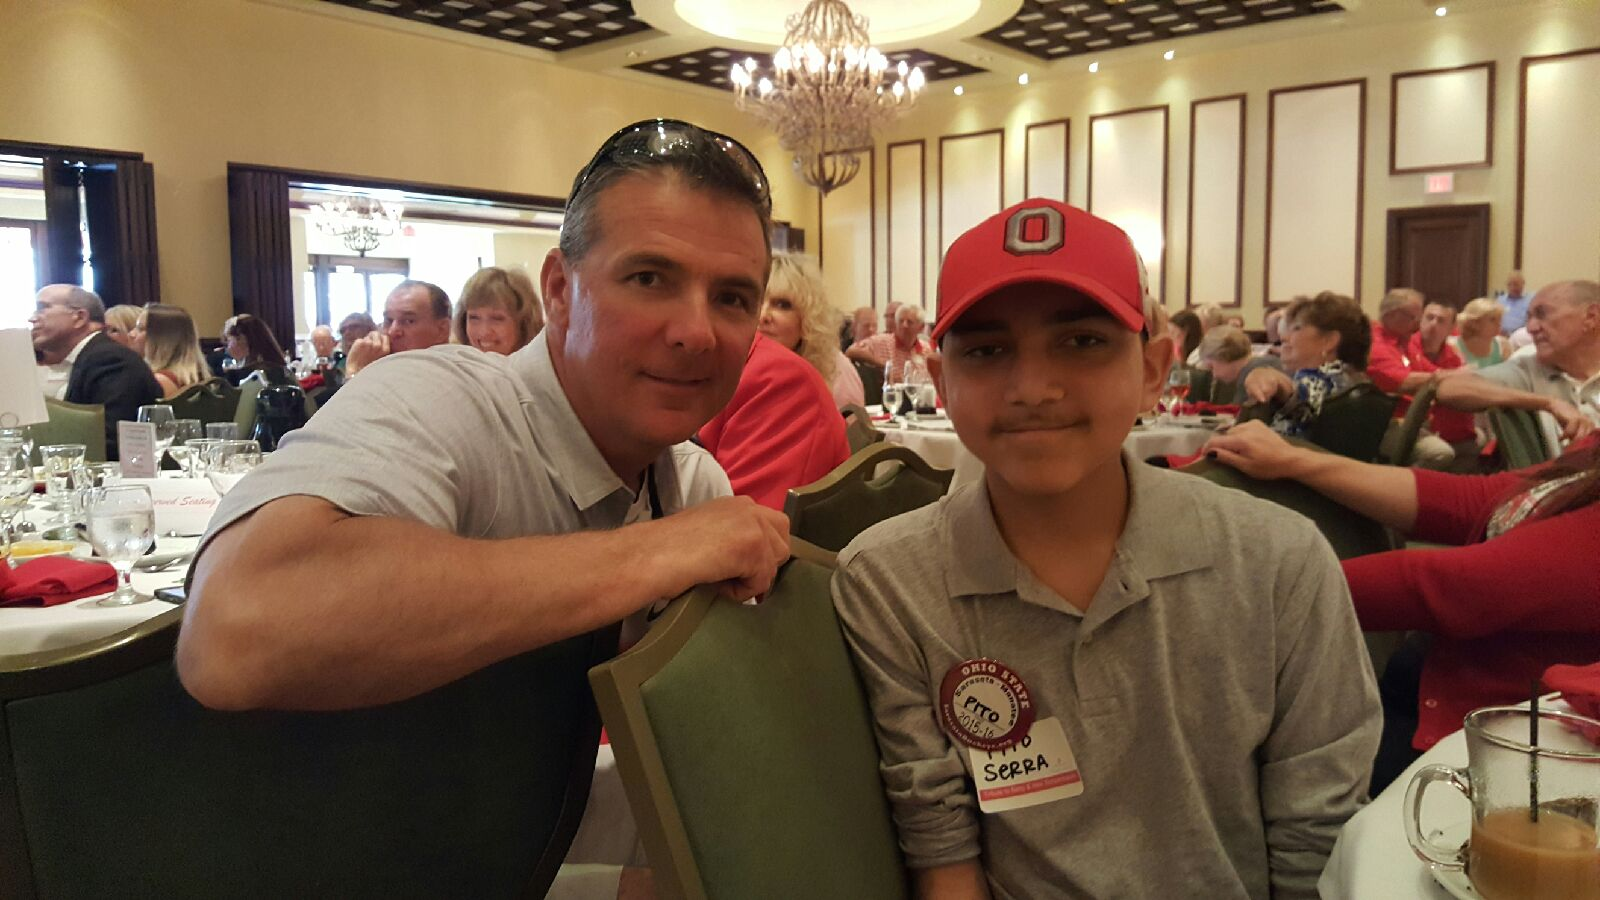 Though he missed his dream weekend,Pito had lunch with Urban Meyer. Head Coach of The Ohio State University football team!